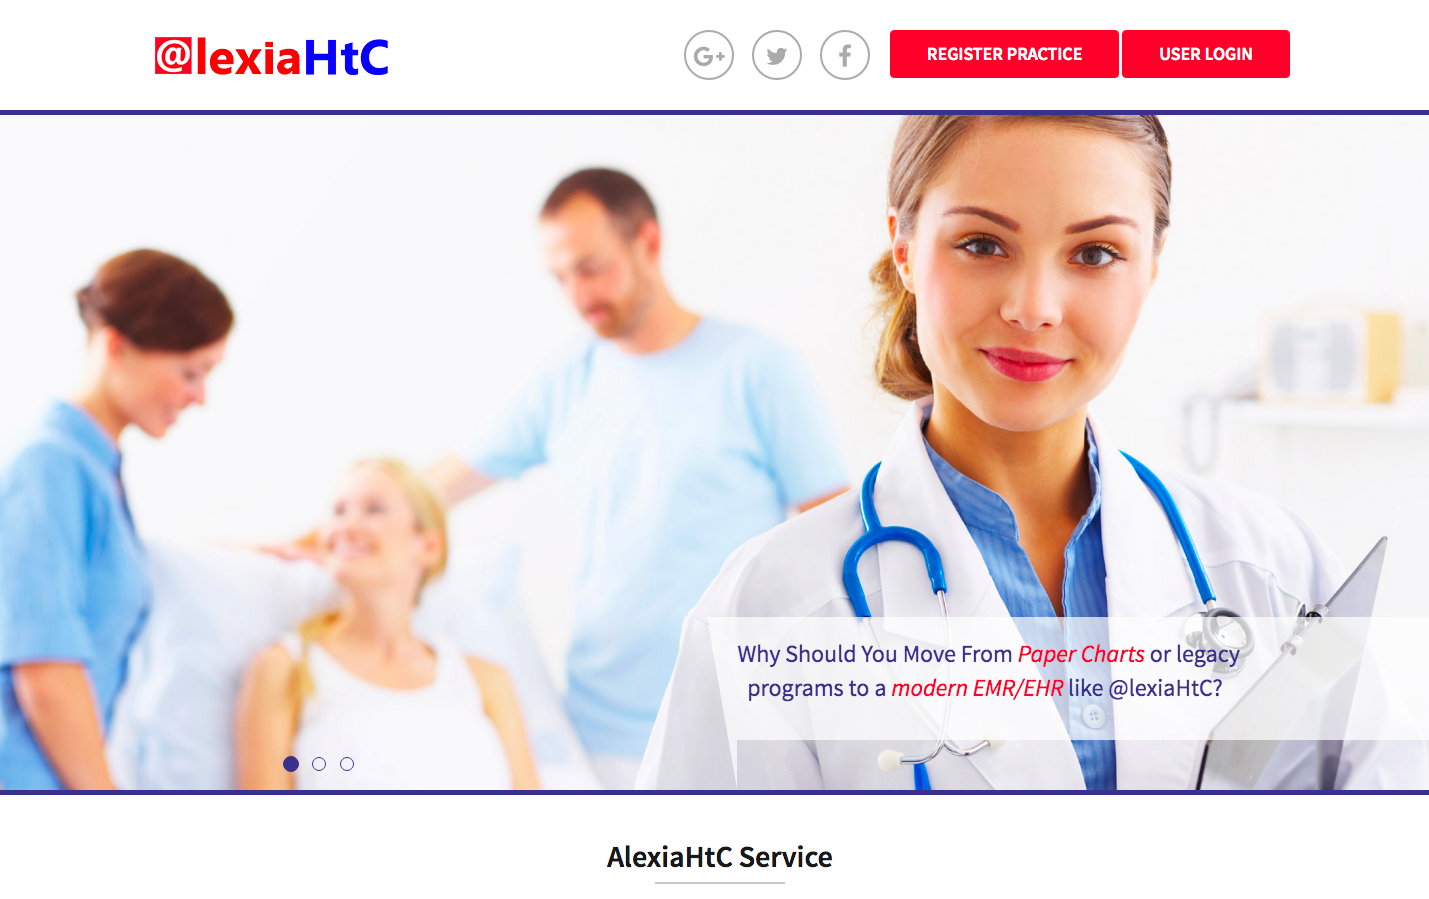 Alexiacare Corporation Builds and Gives Away New Virtual Visit EMR/EHR Tool to Doctors Offices Facing COVID-19 Crisis